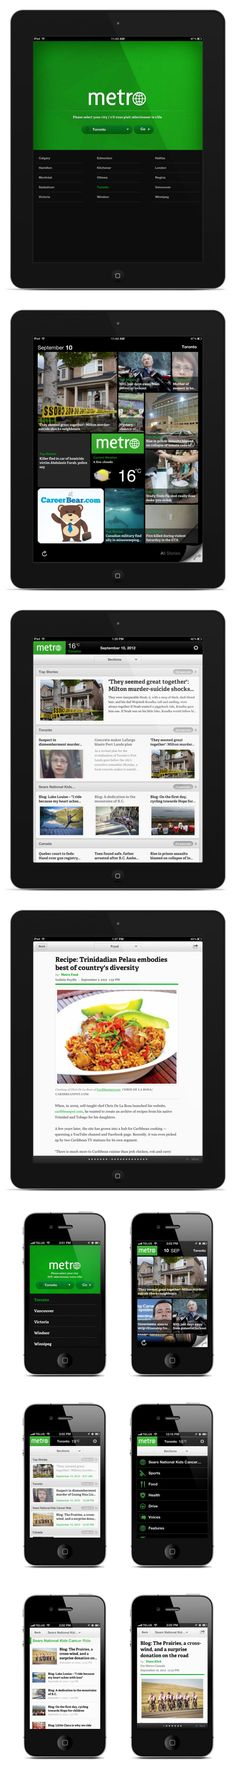 Metro News - iOS & Android App by Anna Karatcheva, via Behance